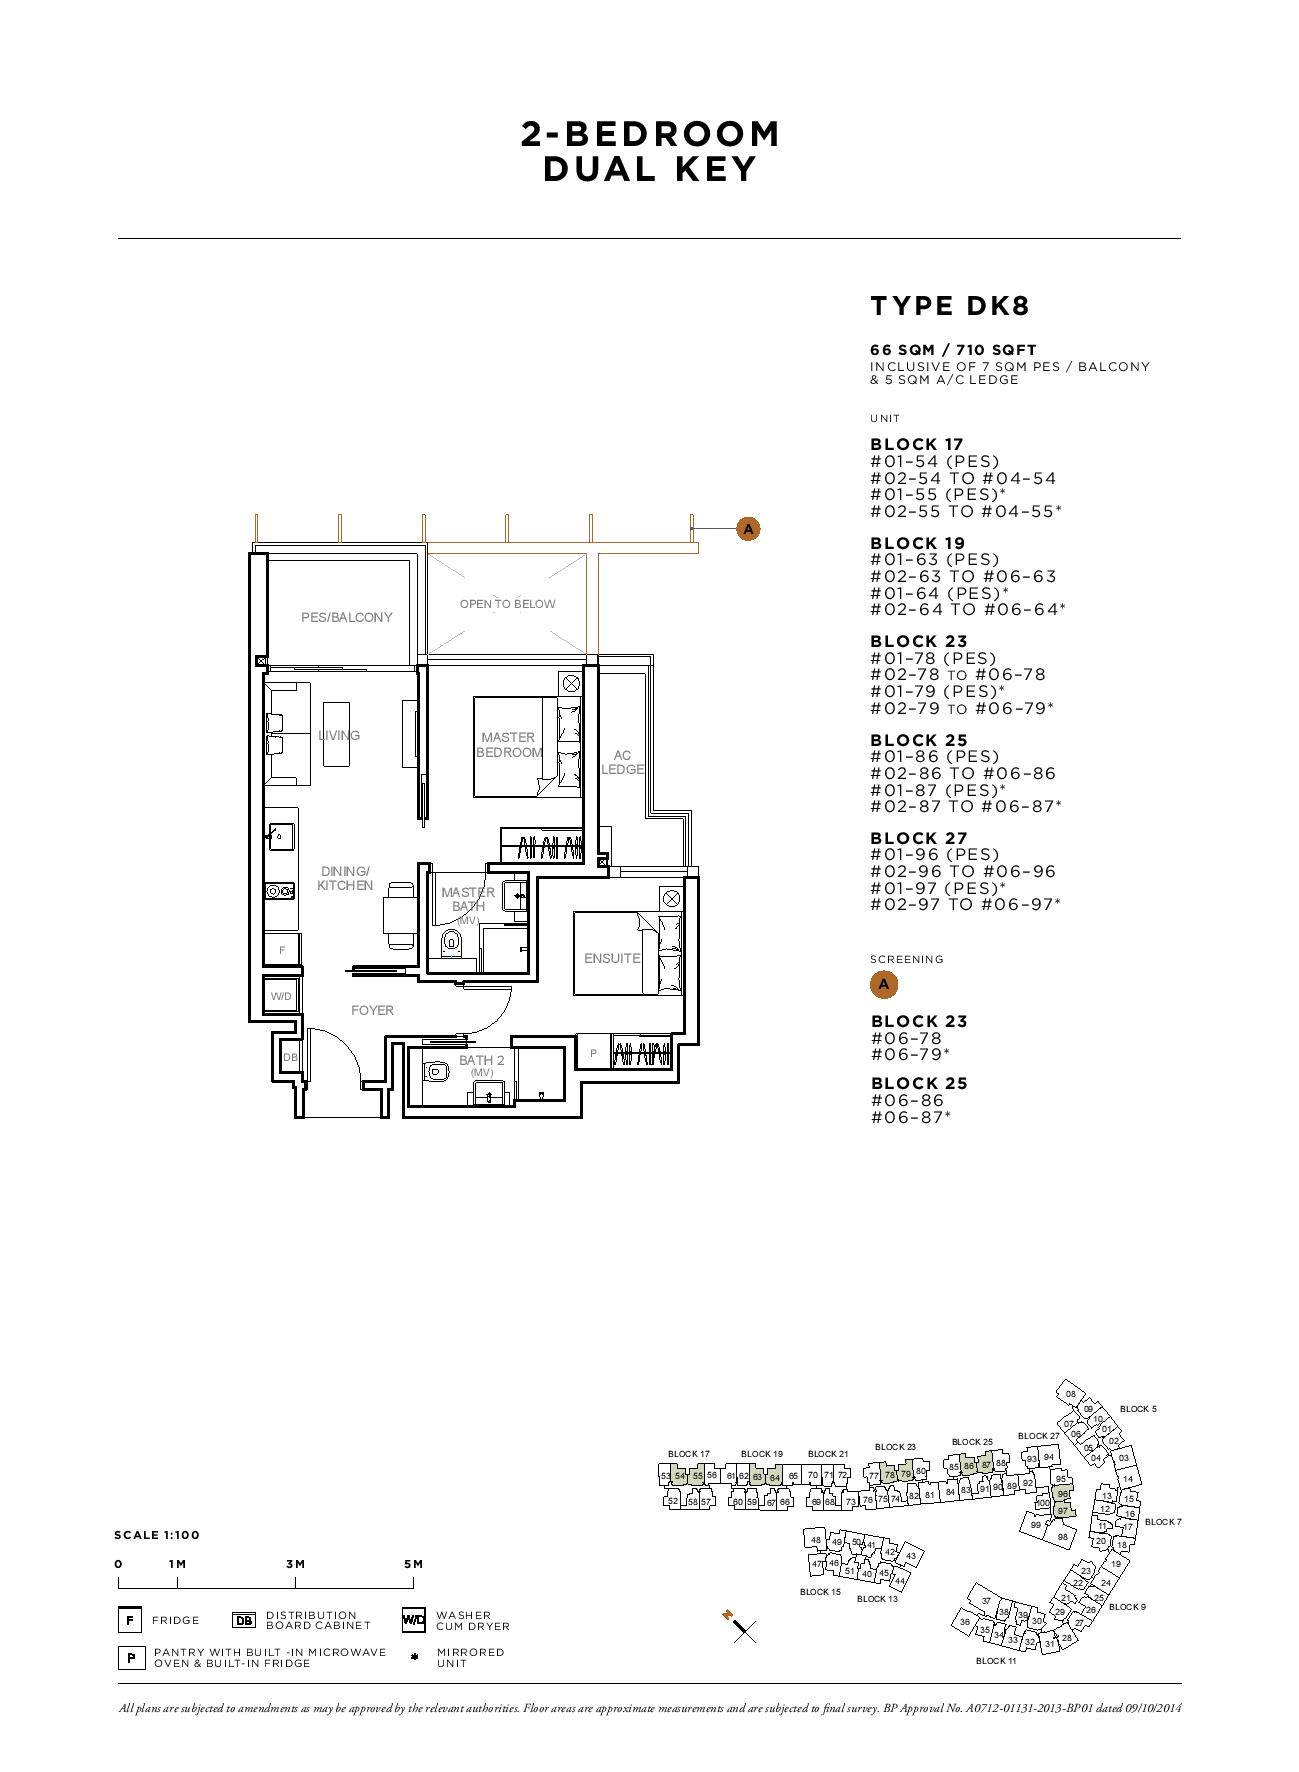 Sophia Hills 2 Bedroom Dual Key Type DK8 Floor Plans